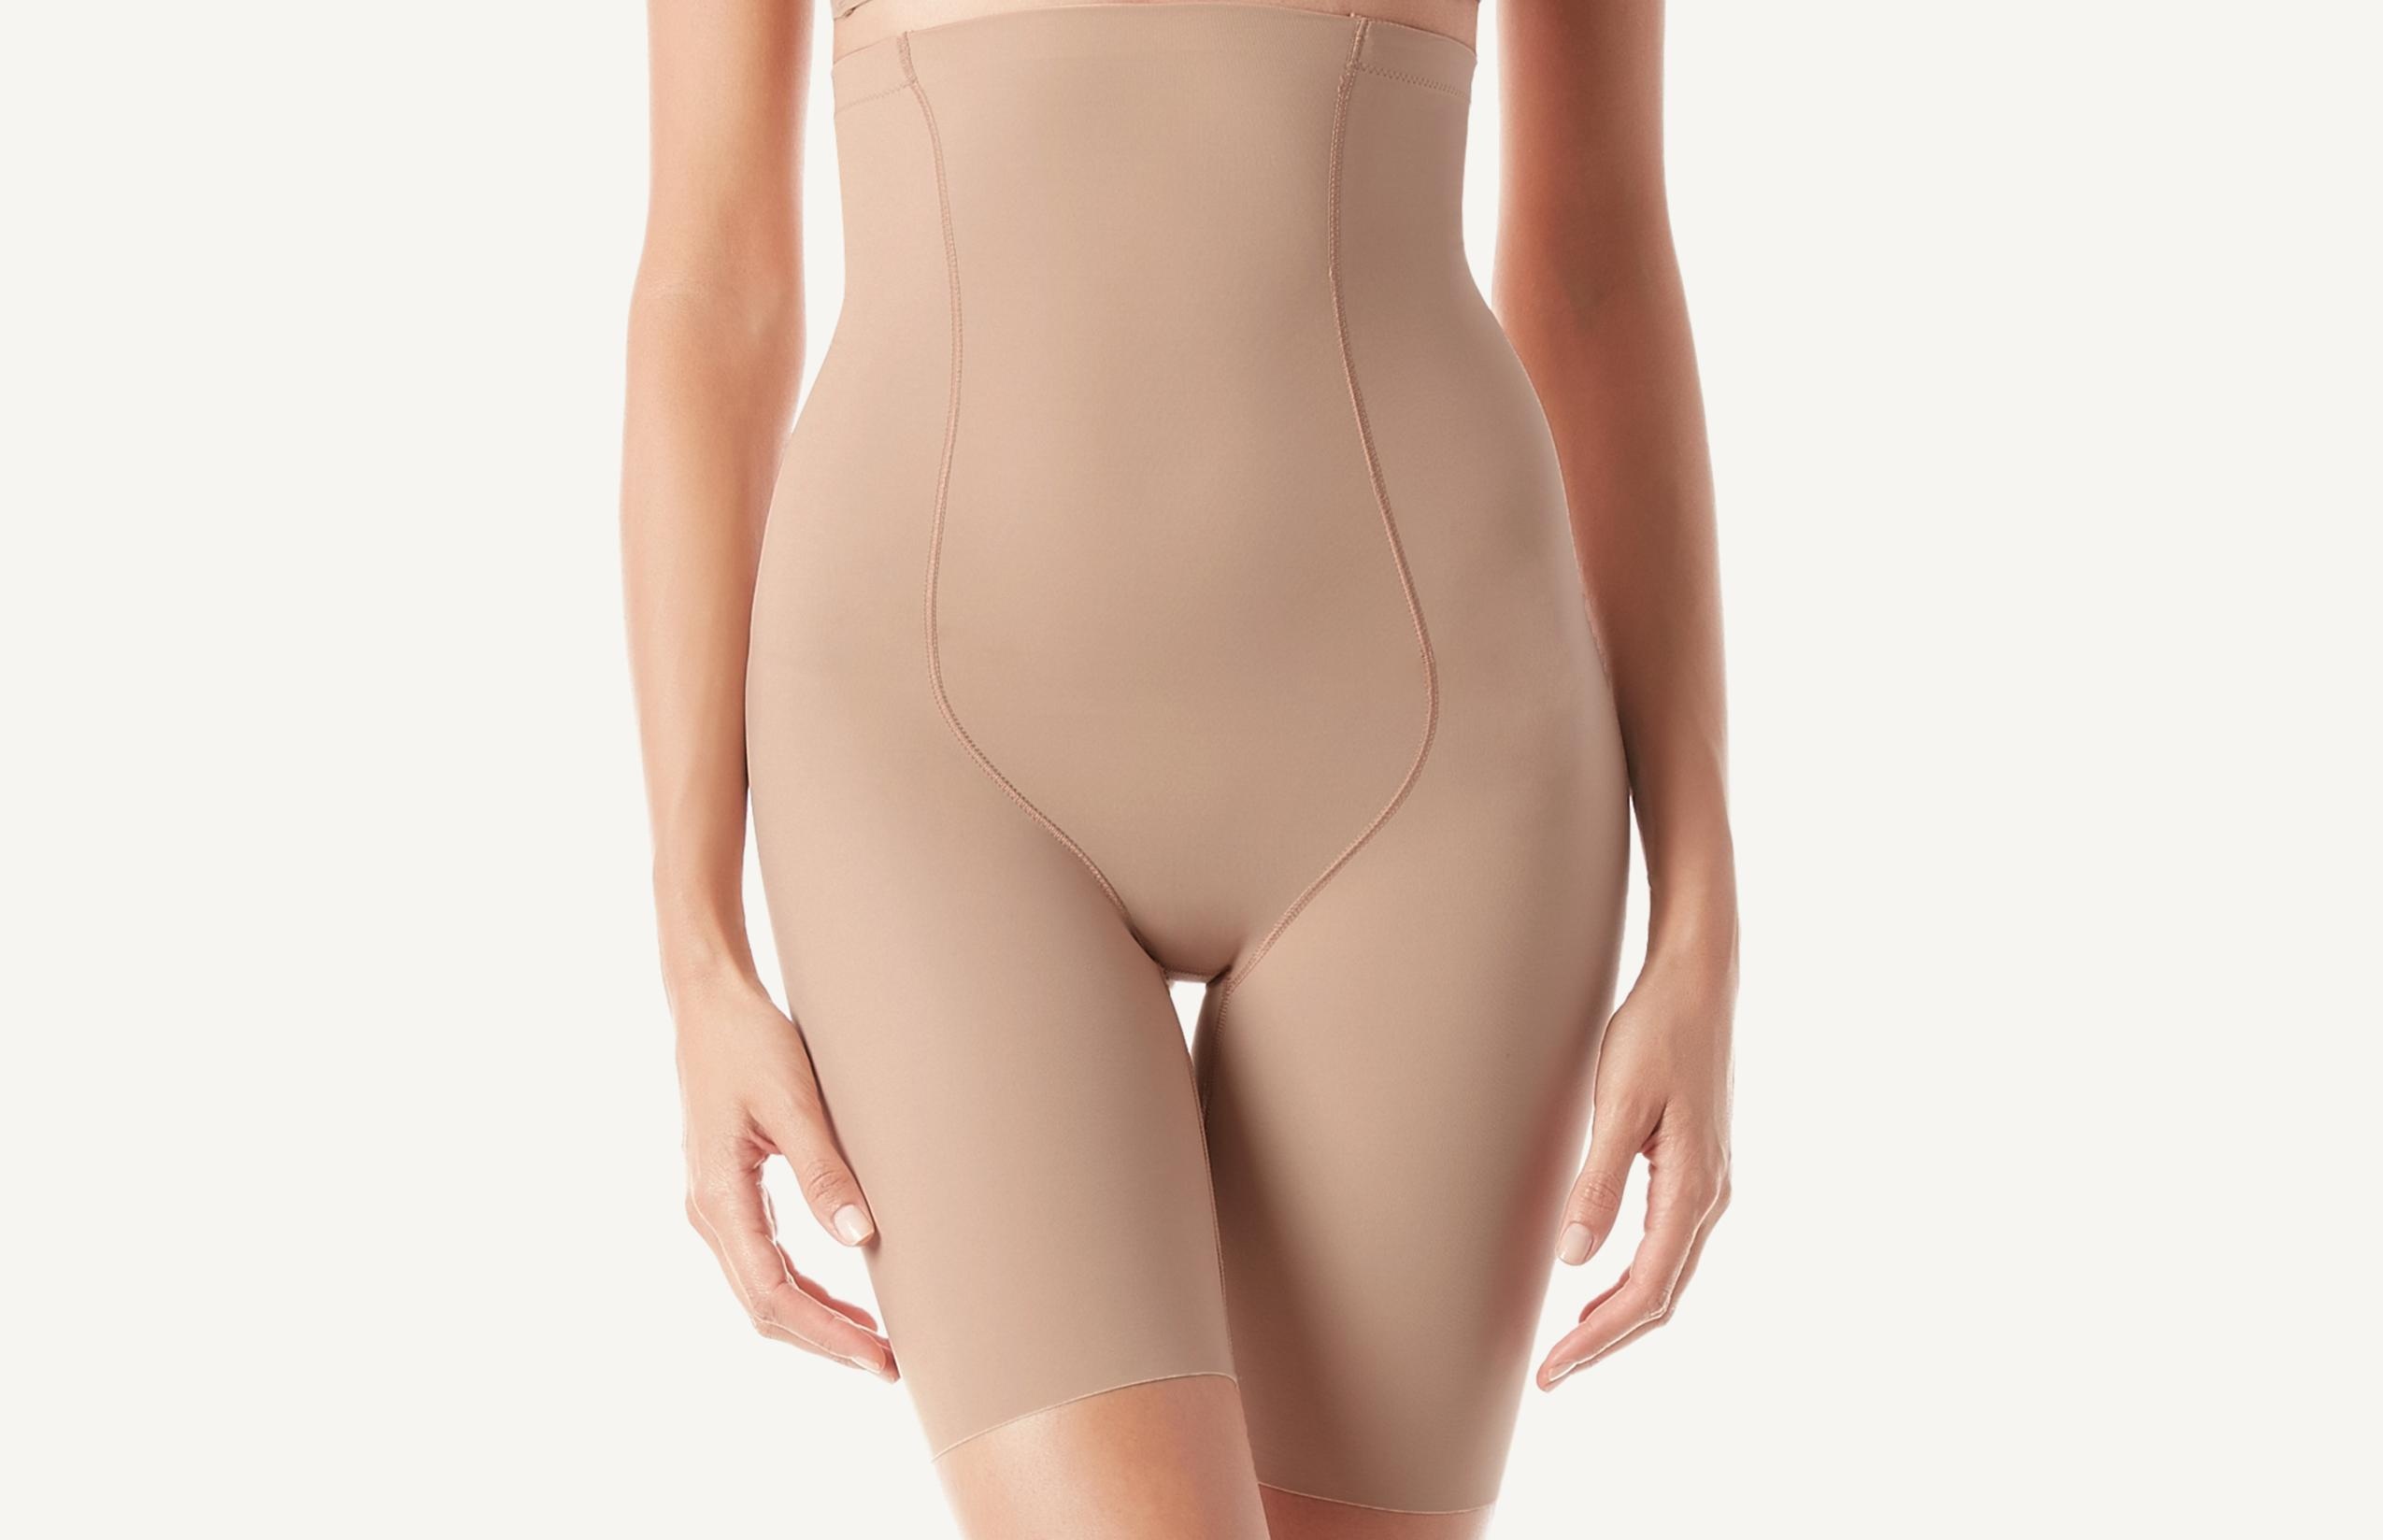 intimissimi - Kurze Shaping-Hose mit hoher Taille